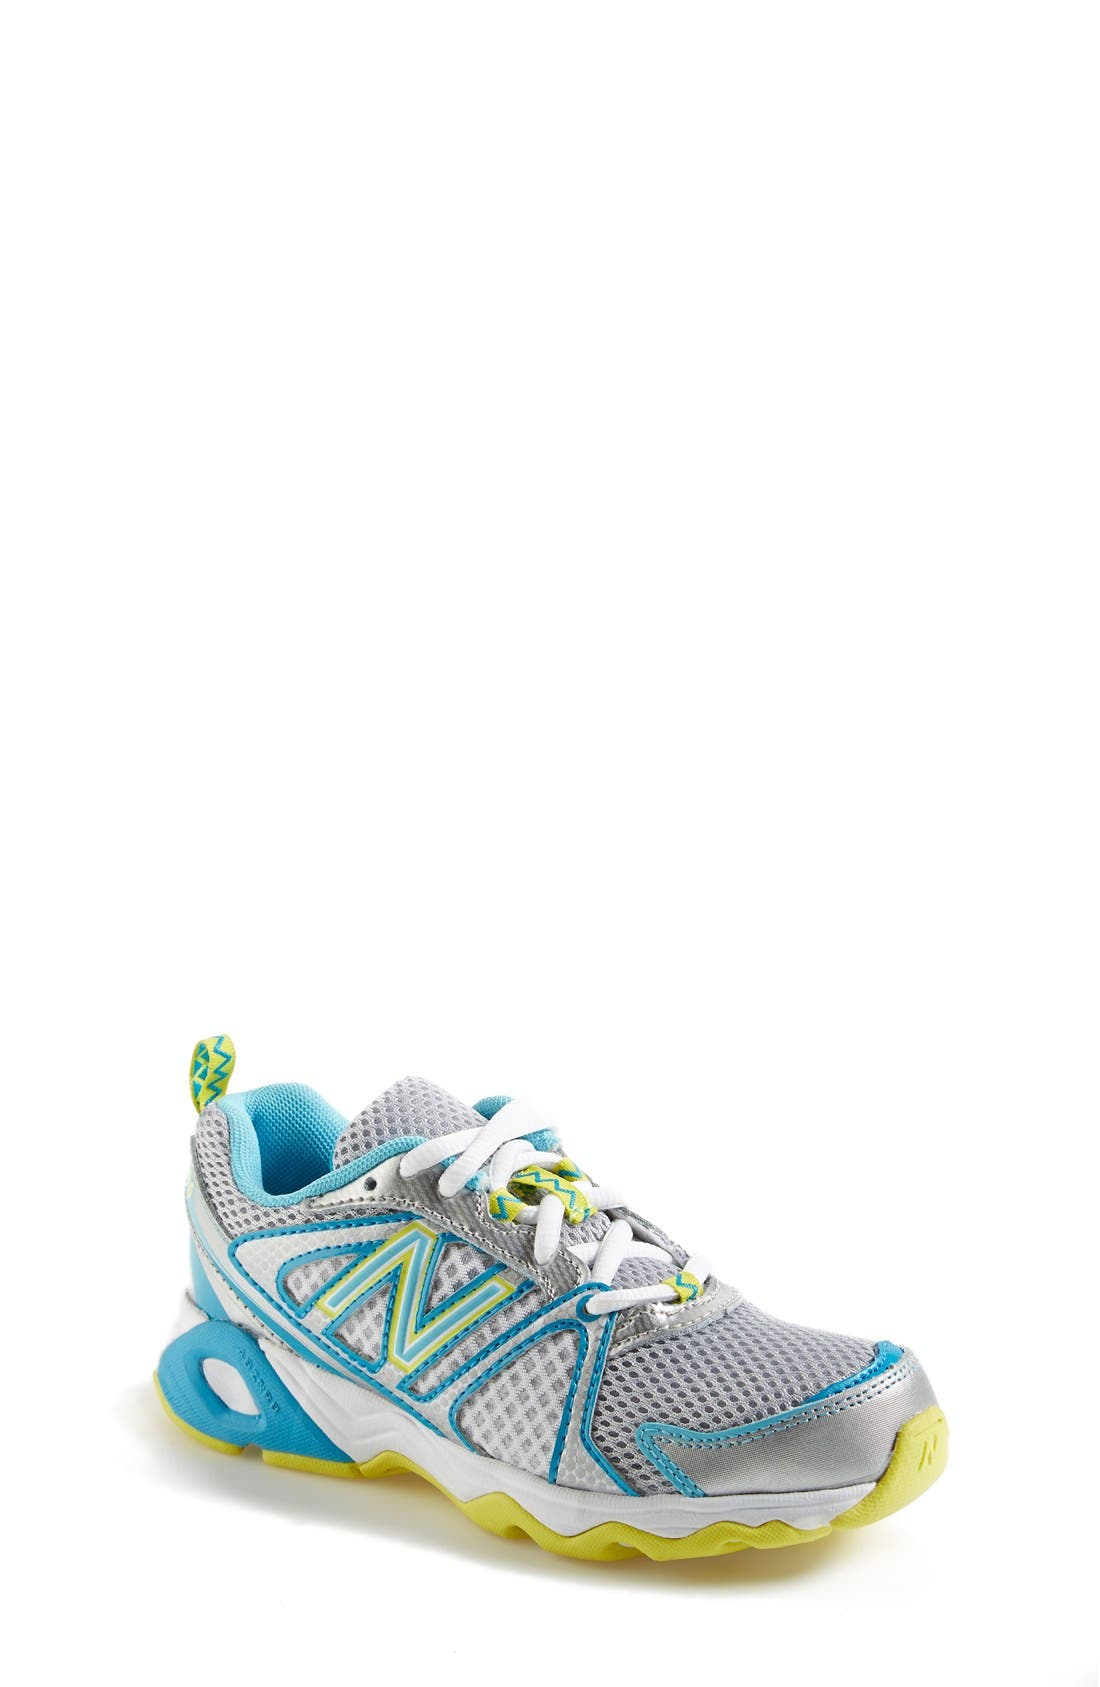 Main Image - New Balance '696' Athletic Shoe (Toddler, Little Kid & Big Kid)